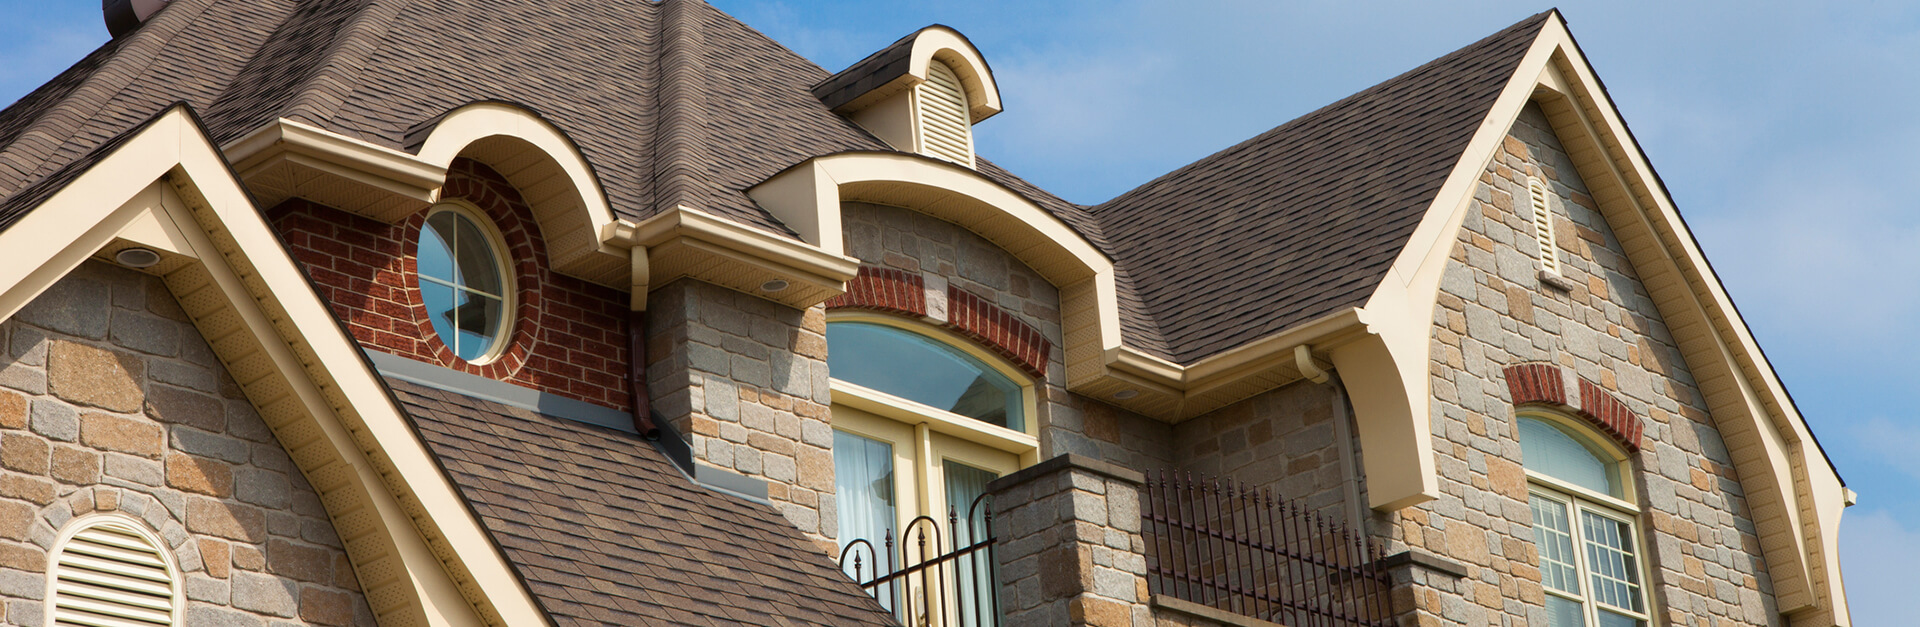 Home Roof Services